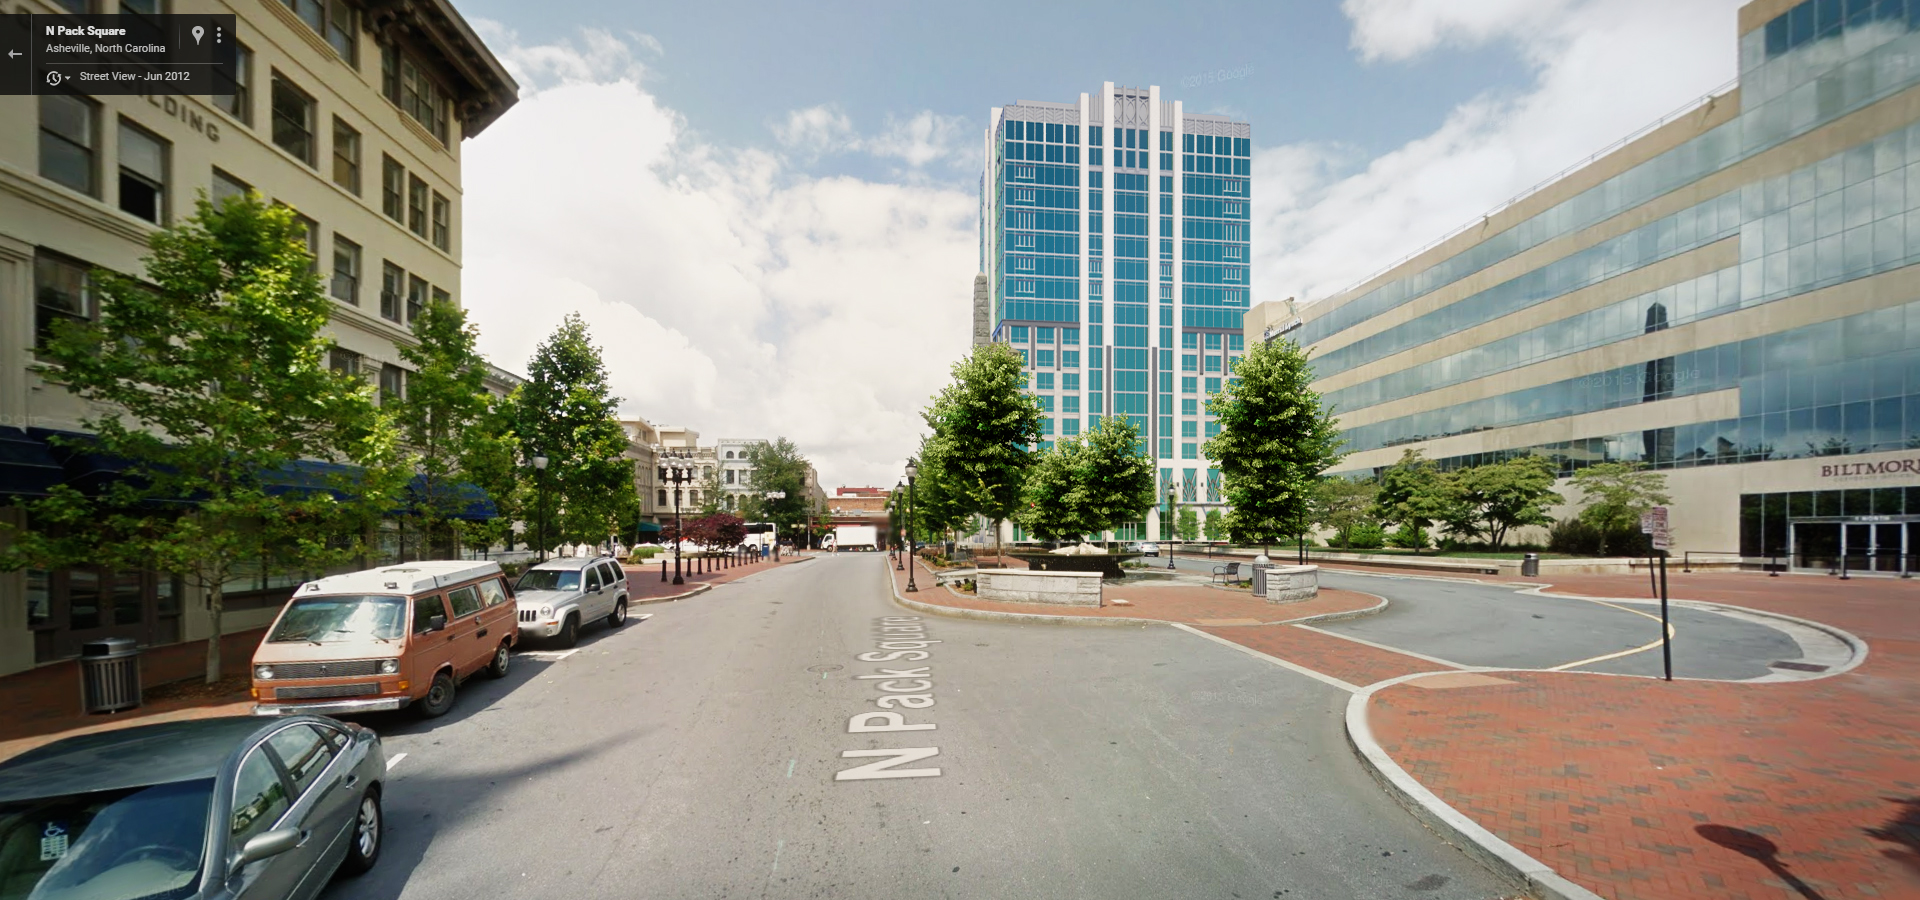 Downtown Asheville Hotel Project Roved City S Tallest Building To Be Remodeled